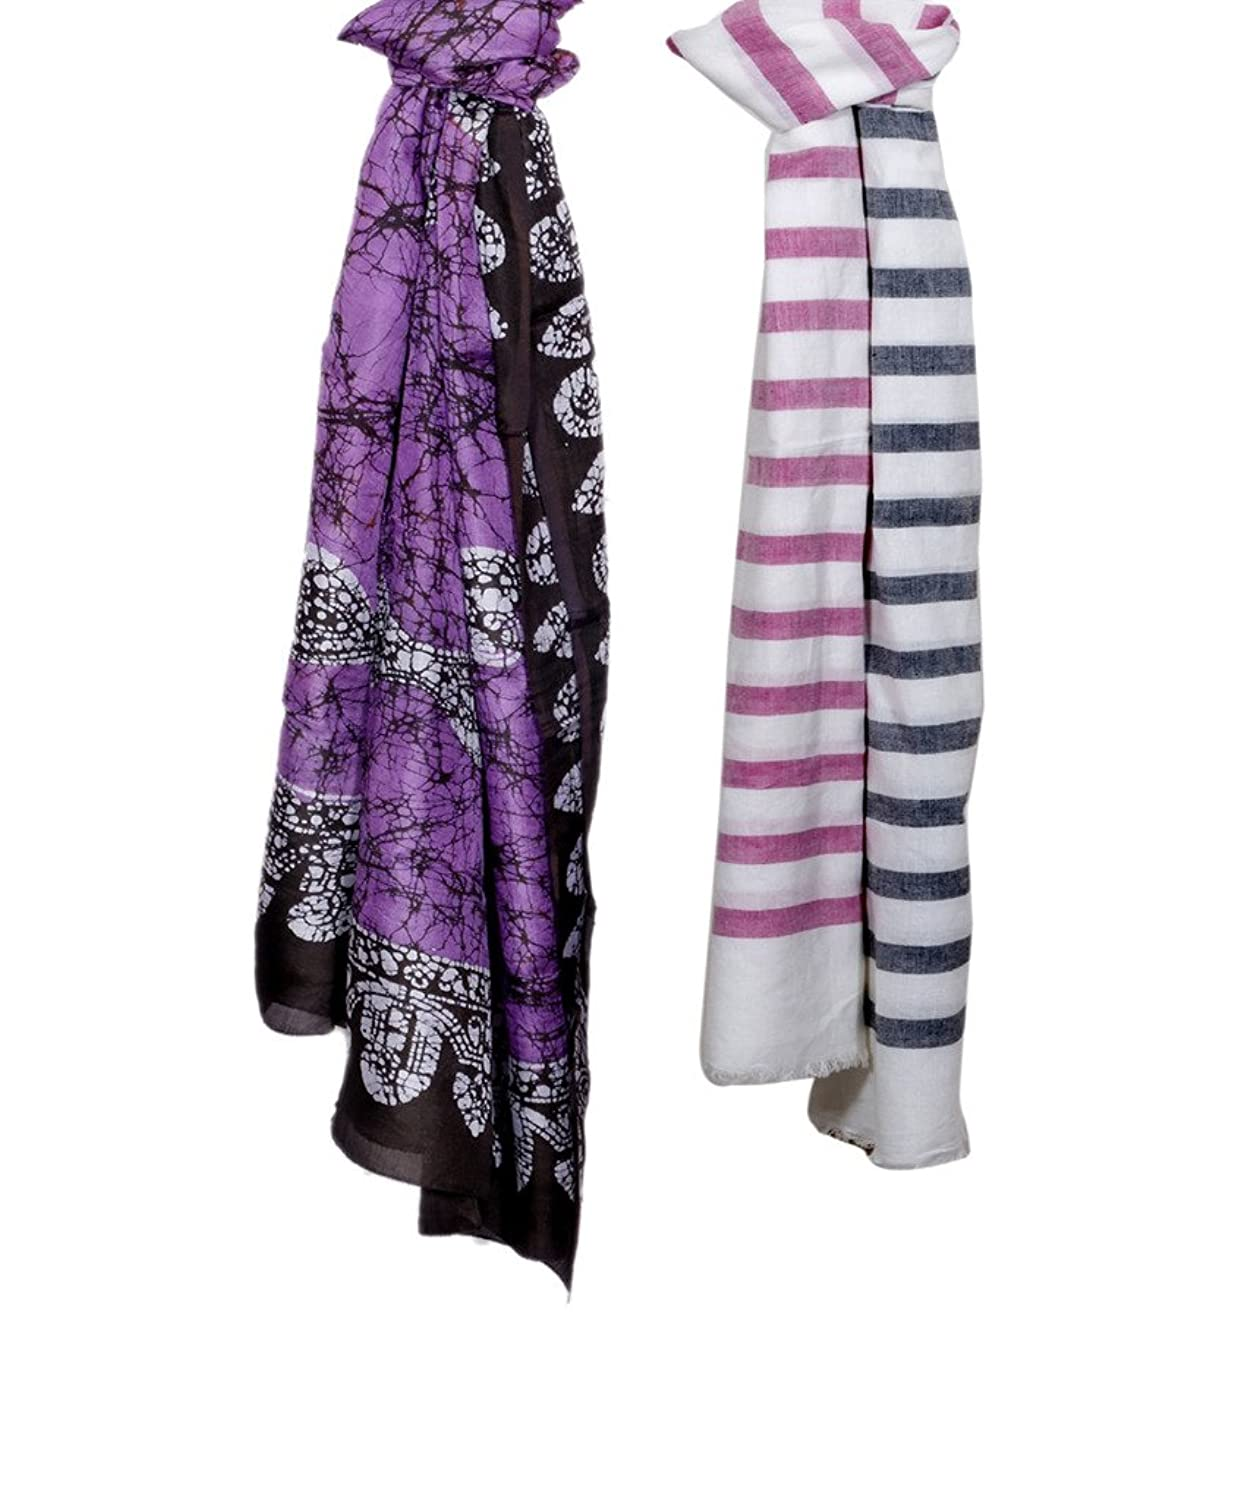 Indistar Women Soft Luxurious Stole for All Seasons (Combo Pack of 2)